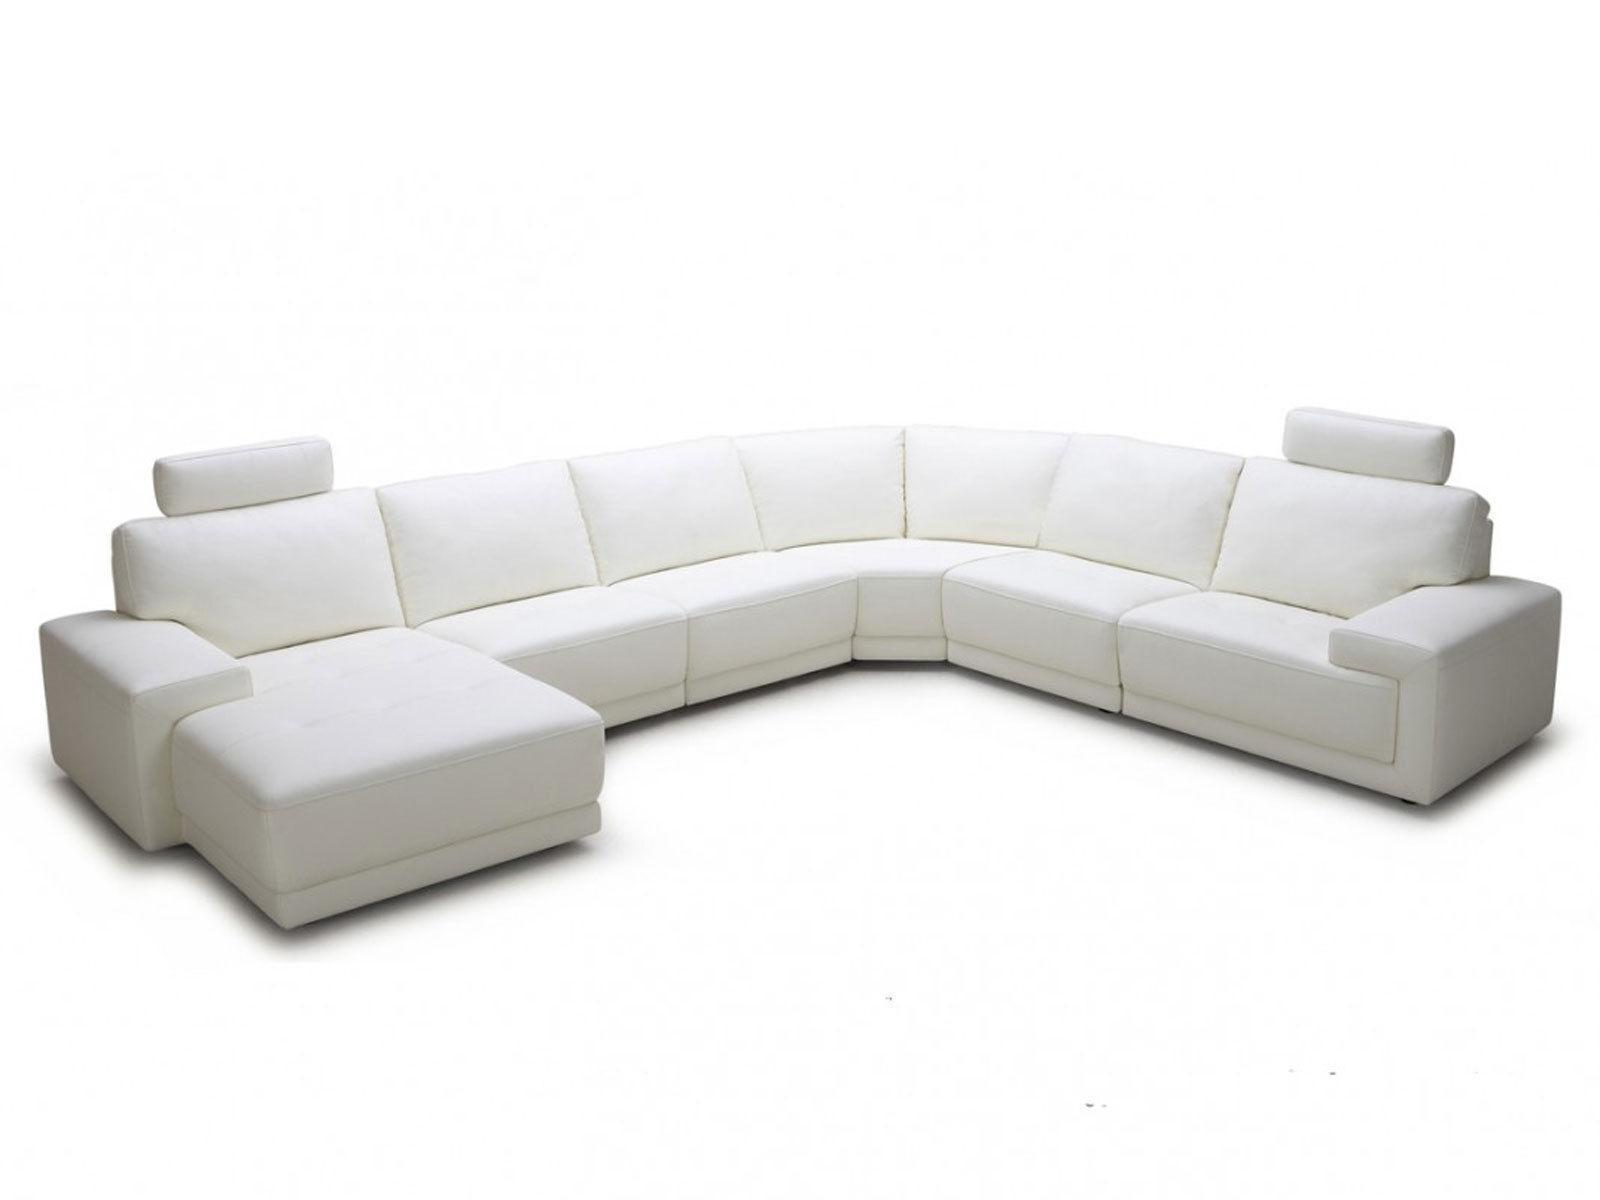 Lucerna New Modern White Eco Leather Living Room Set Sofa Couch Chaise Sectional